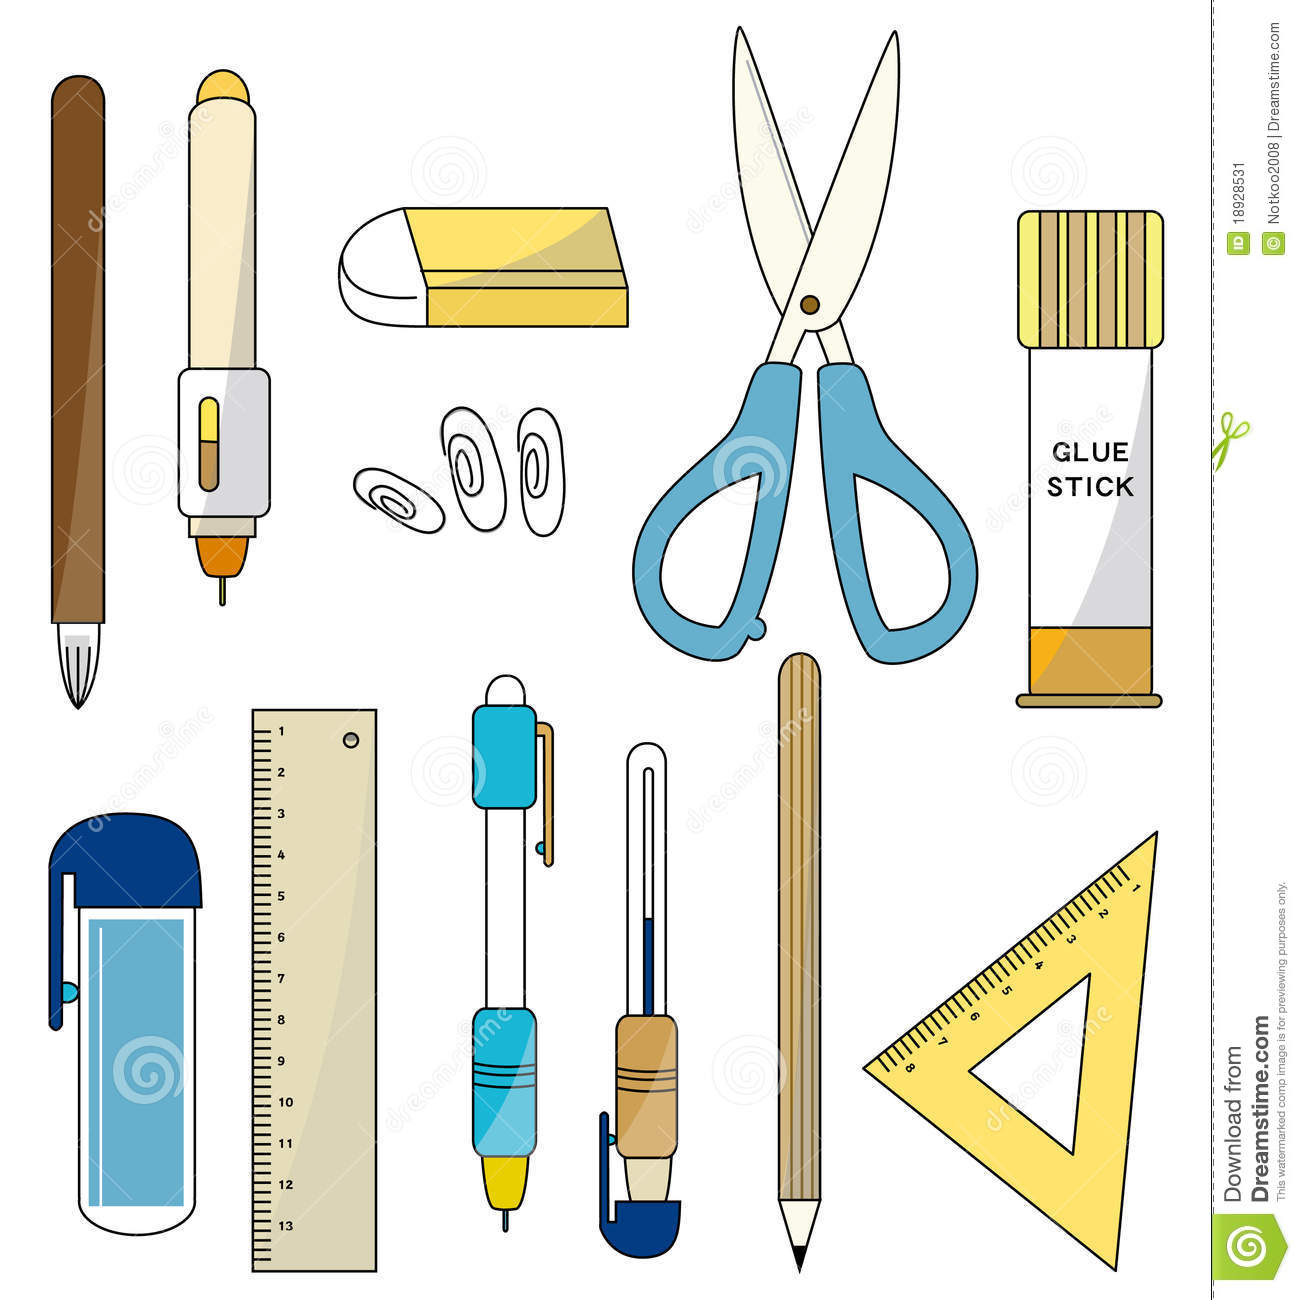 Archivo S2e20 Bill demon form also Pen Or Pencil also Pyramid Card With Instructions Template further Set Square Tools And Utensils Measuring Drawing Measure Education Geometry Rulers 827051 as well How 4870227 draw Body Motion. on triangle eraser